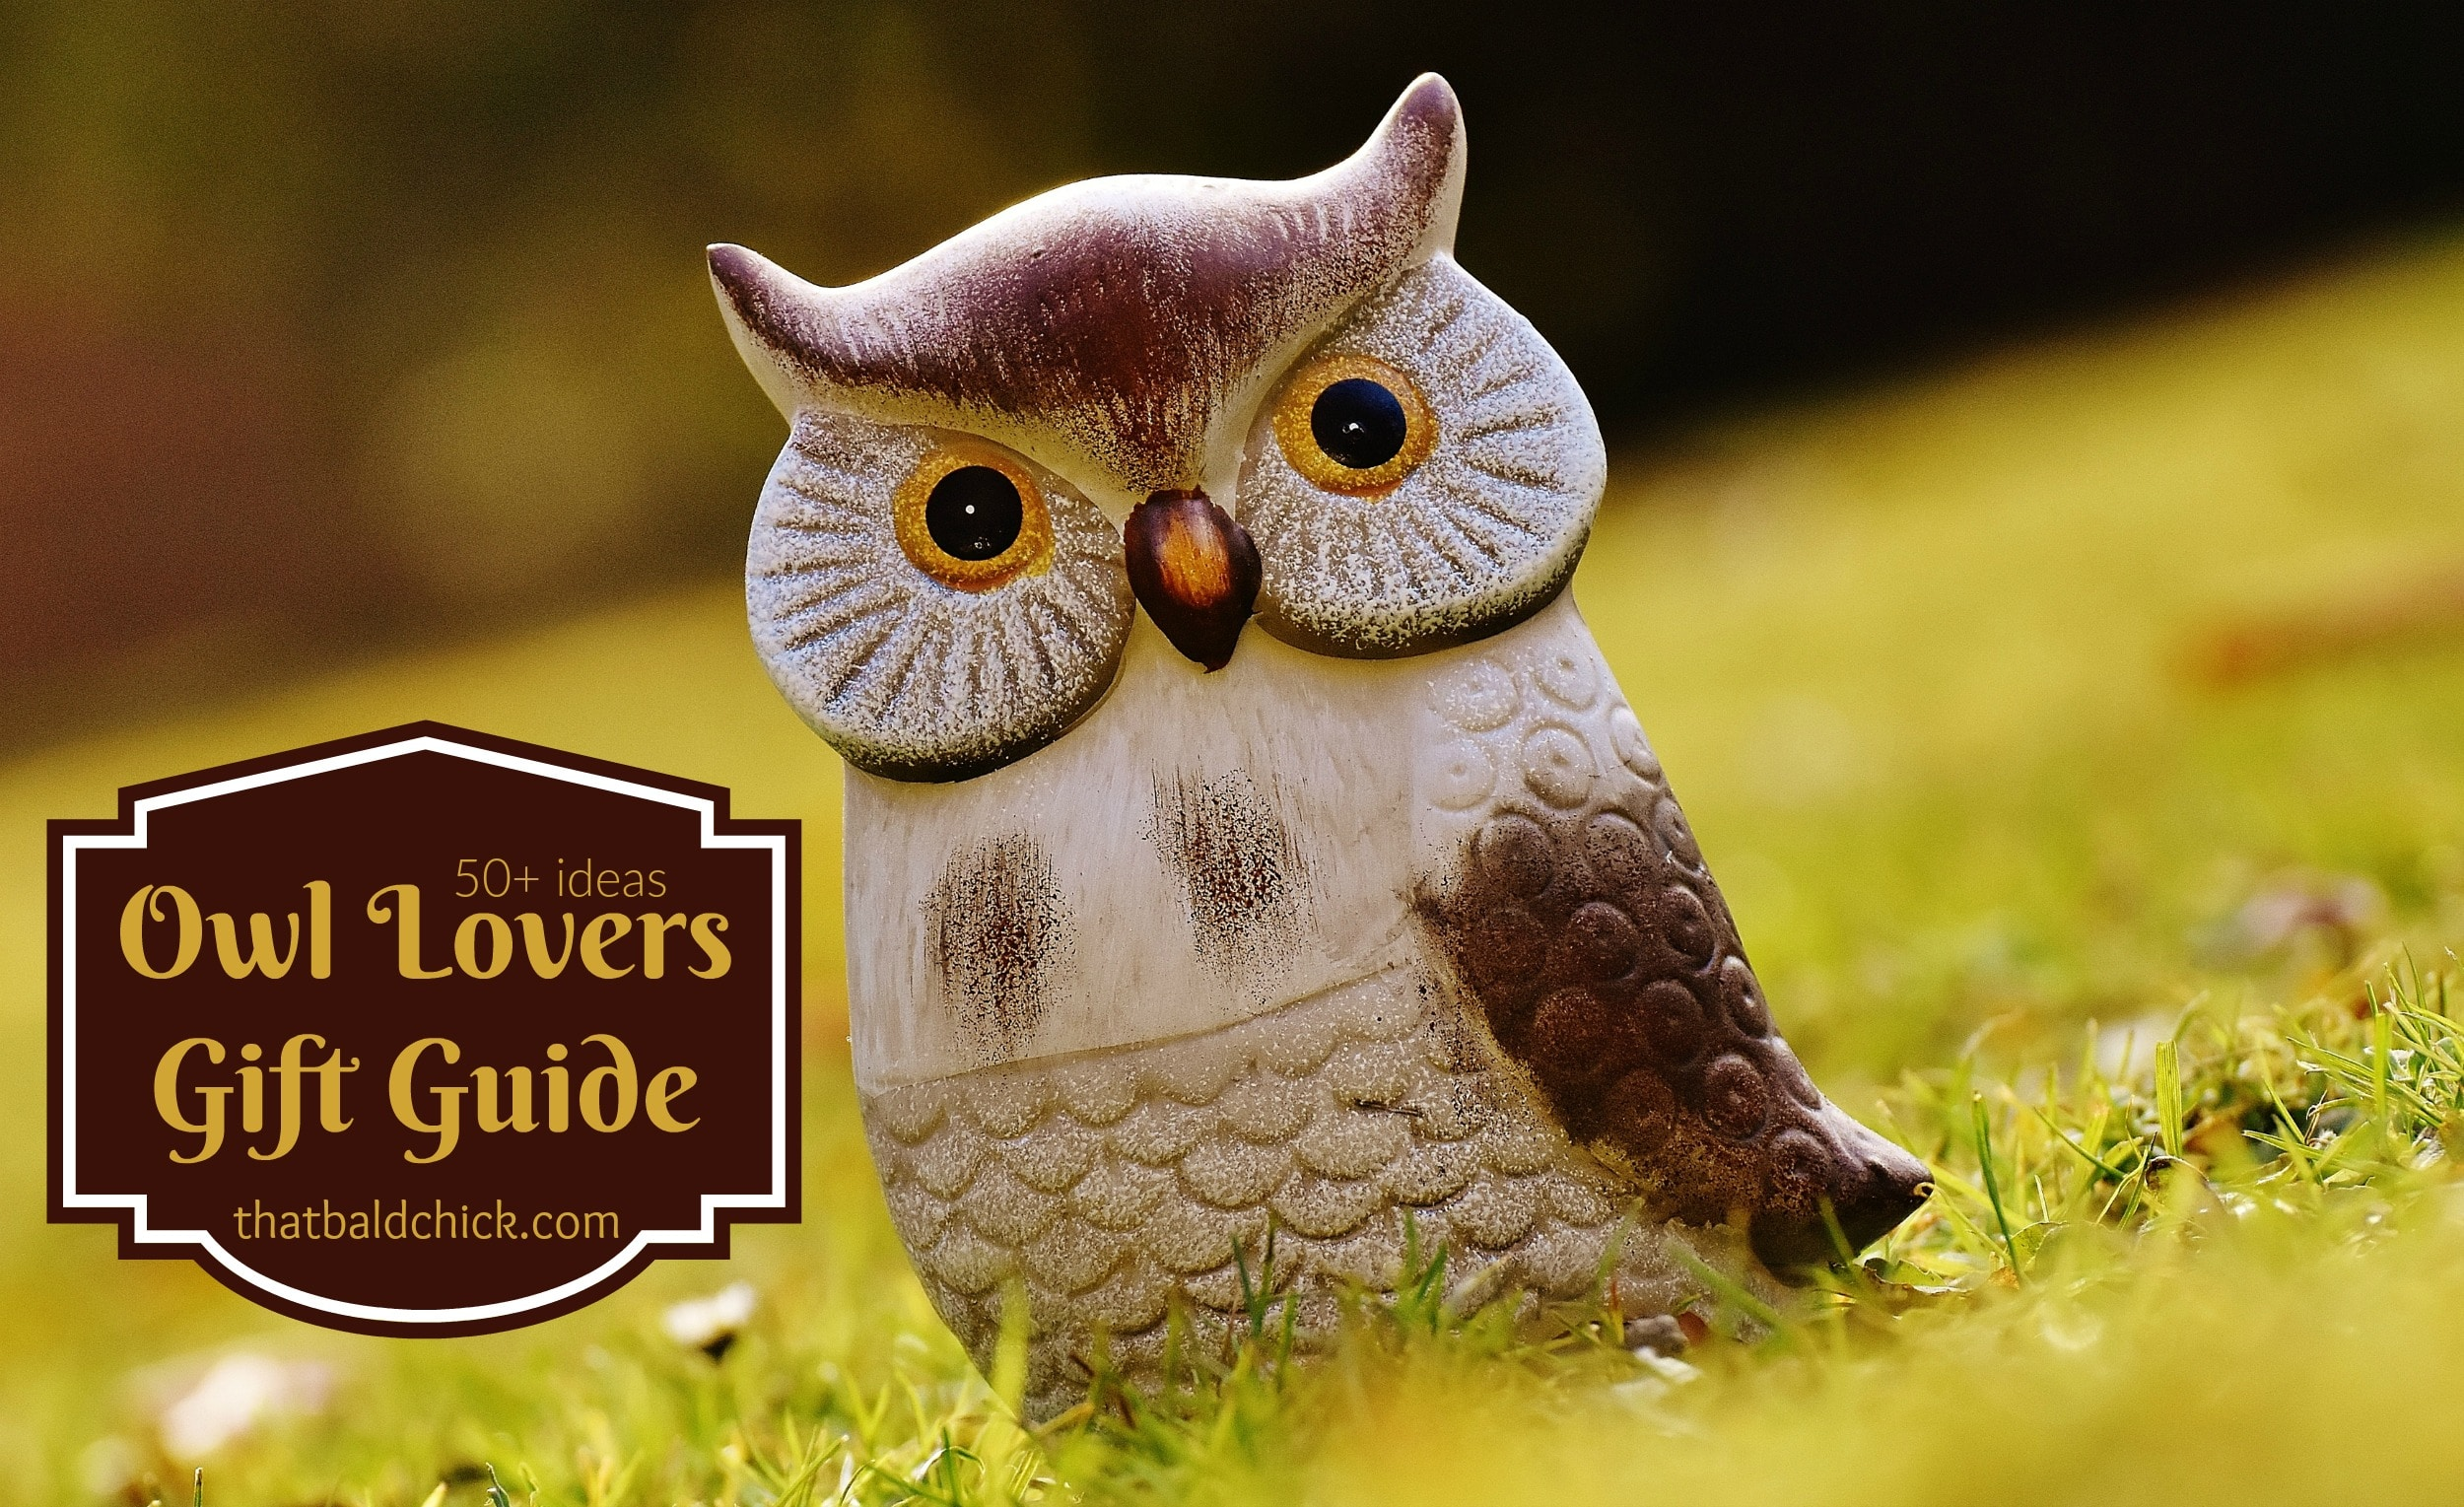 Gift Guide for Owl Lovers - over 50 ideas to show them you give a hoot!